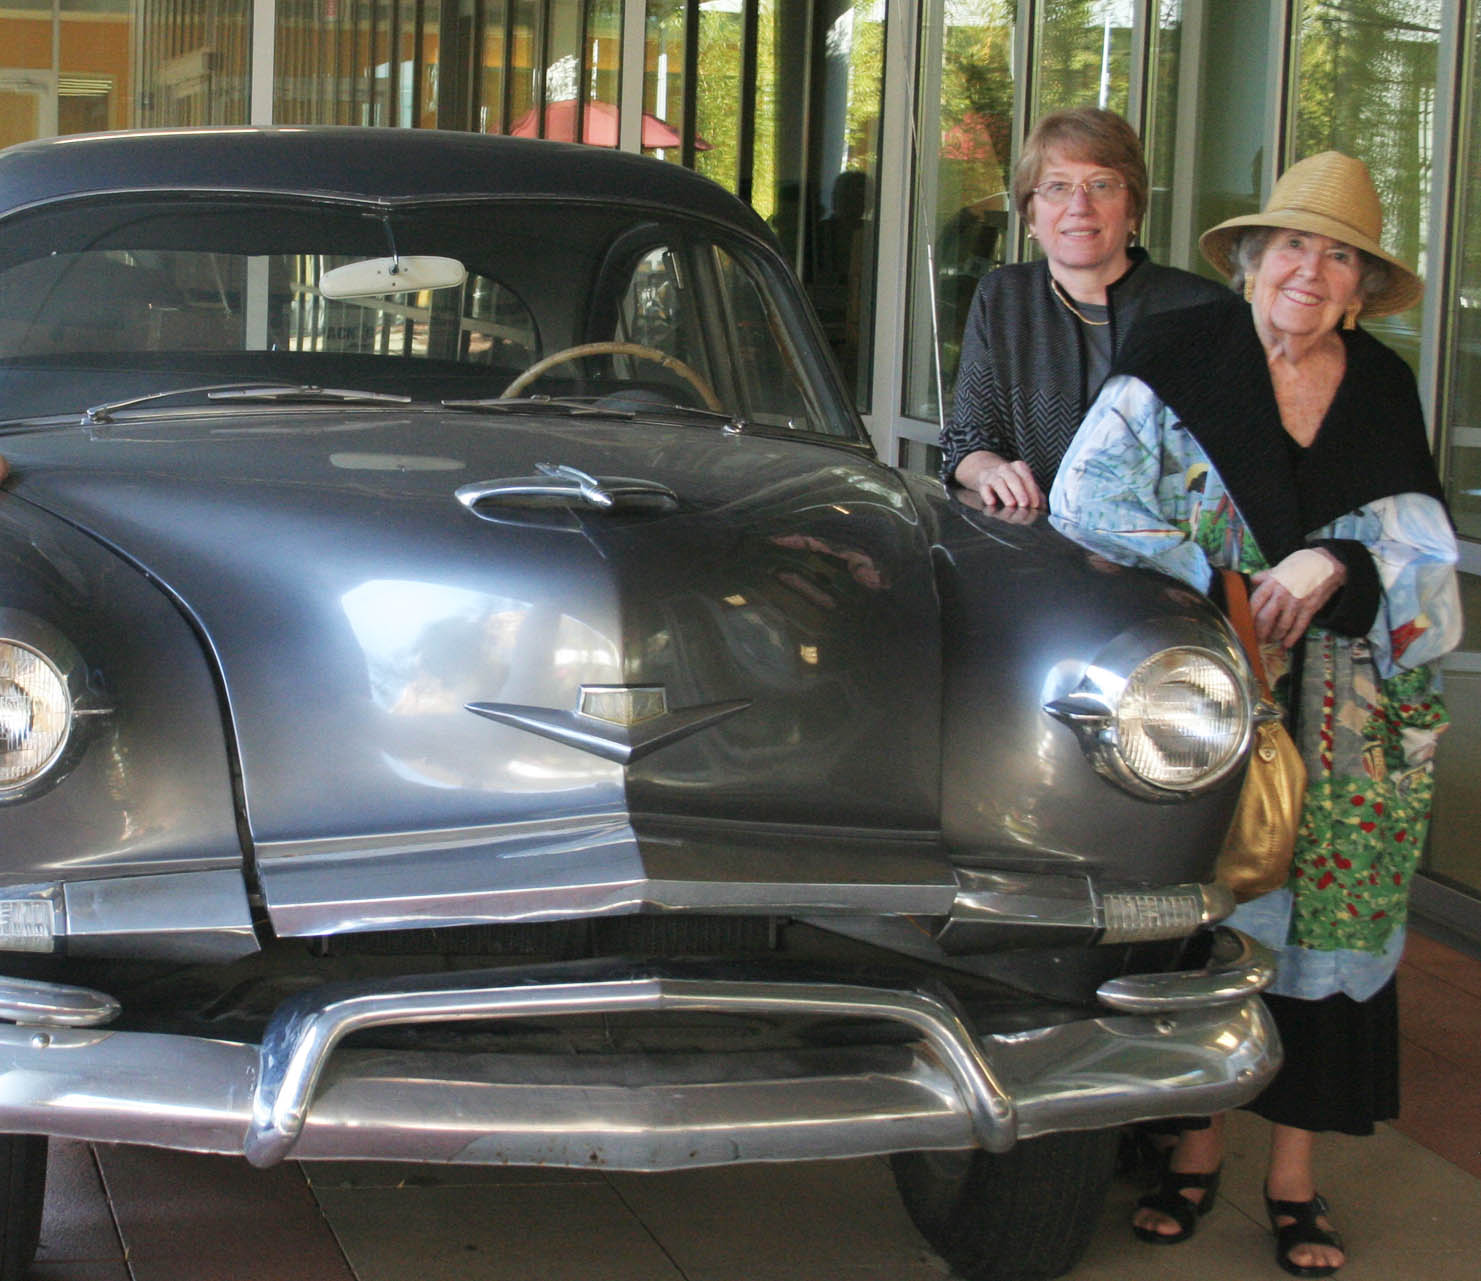 Elizabeth Sandel, MD, and Bobbie Kaiser in 2010 with the 1953 Kaiser Manhattan automobile.